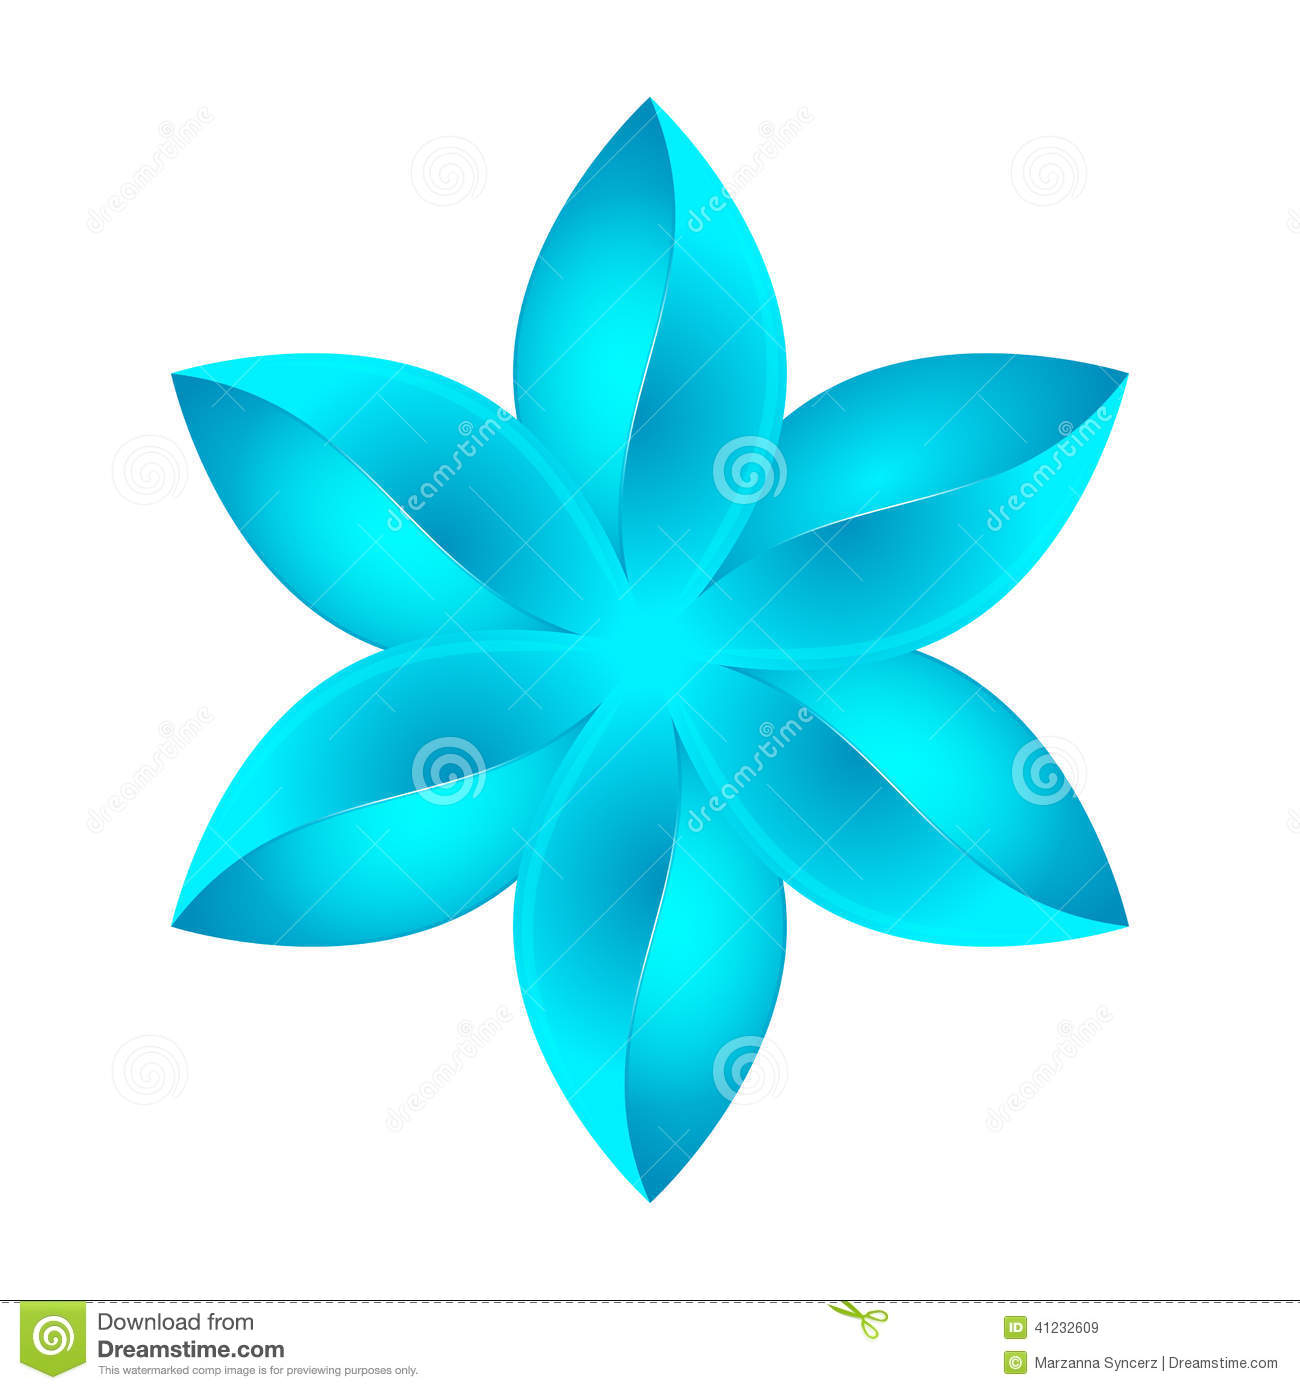 Artistic floral element abstract gzhel folk art blue flowers stock - Abstract Blue Flower Design Royalty Free Stock Images